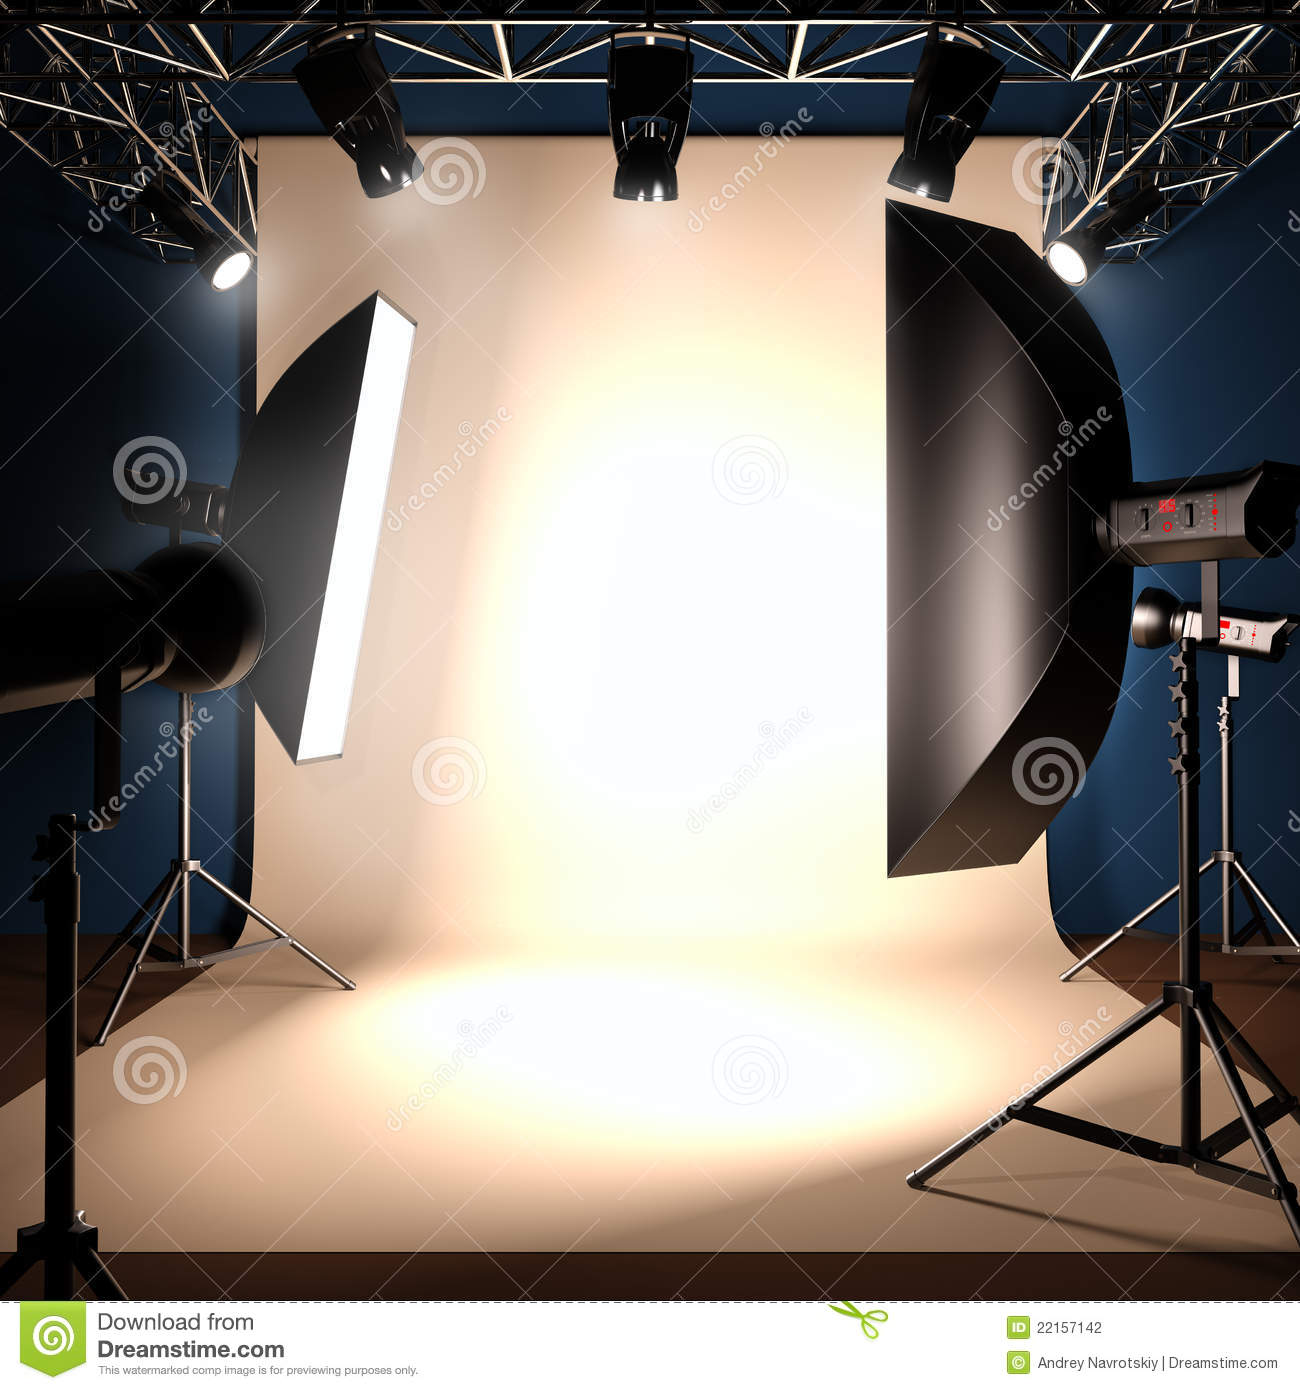 A photo studio background template.